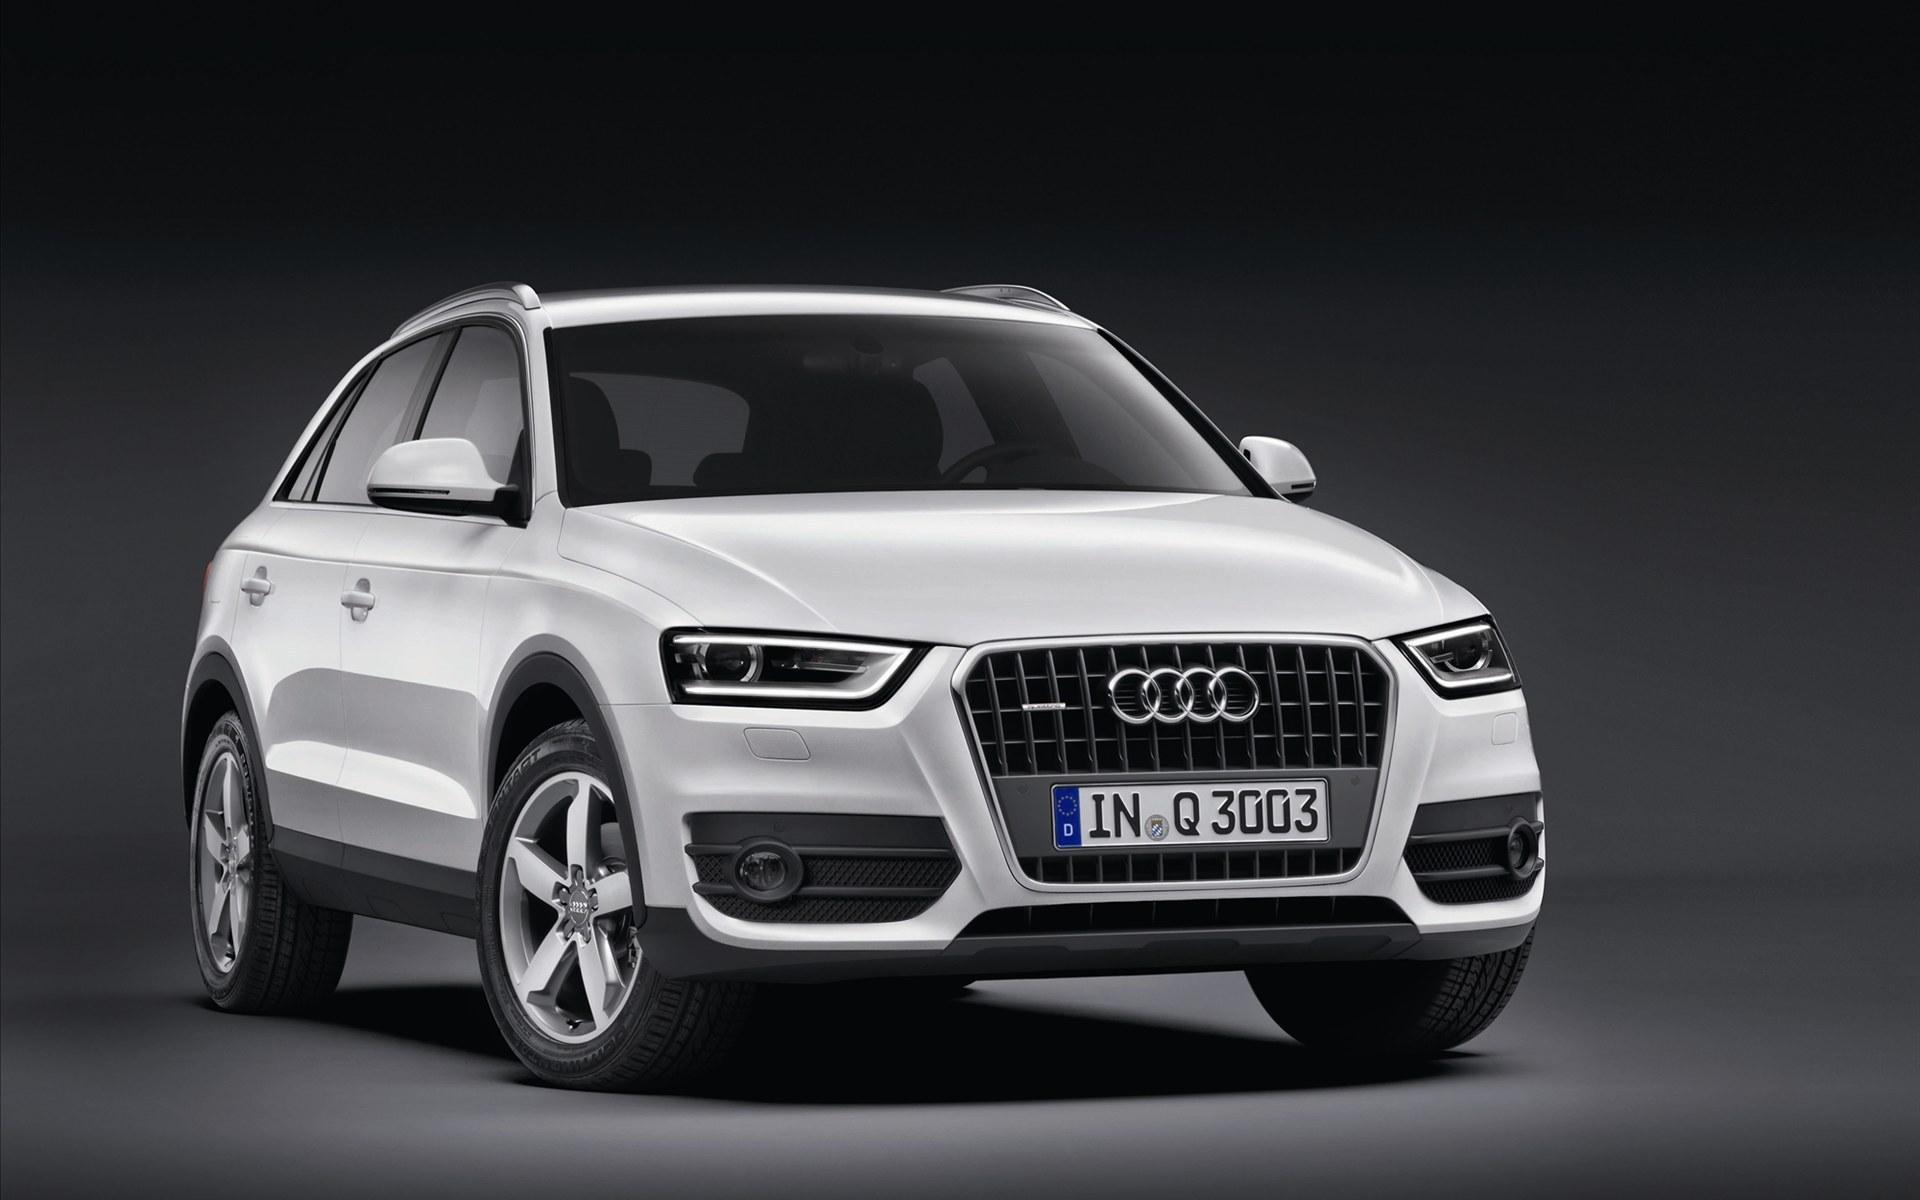 Audi Q3 Hd Wallpapers 22 Image On Genchi Info Q7 Car Wallpapers